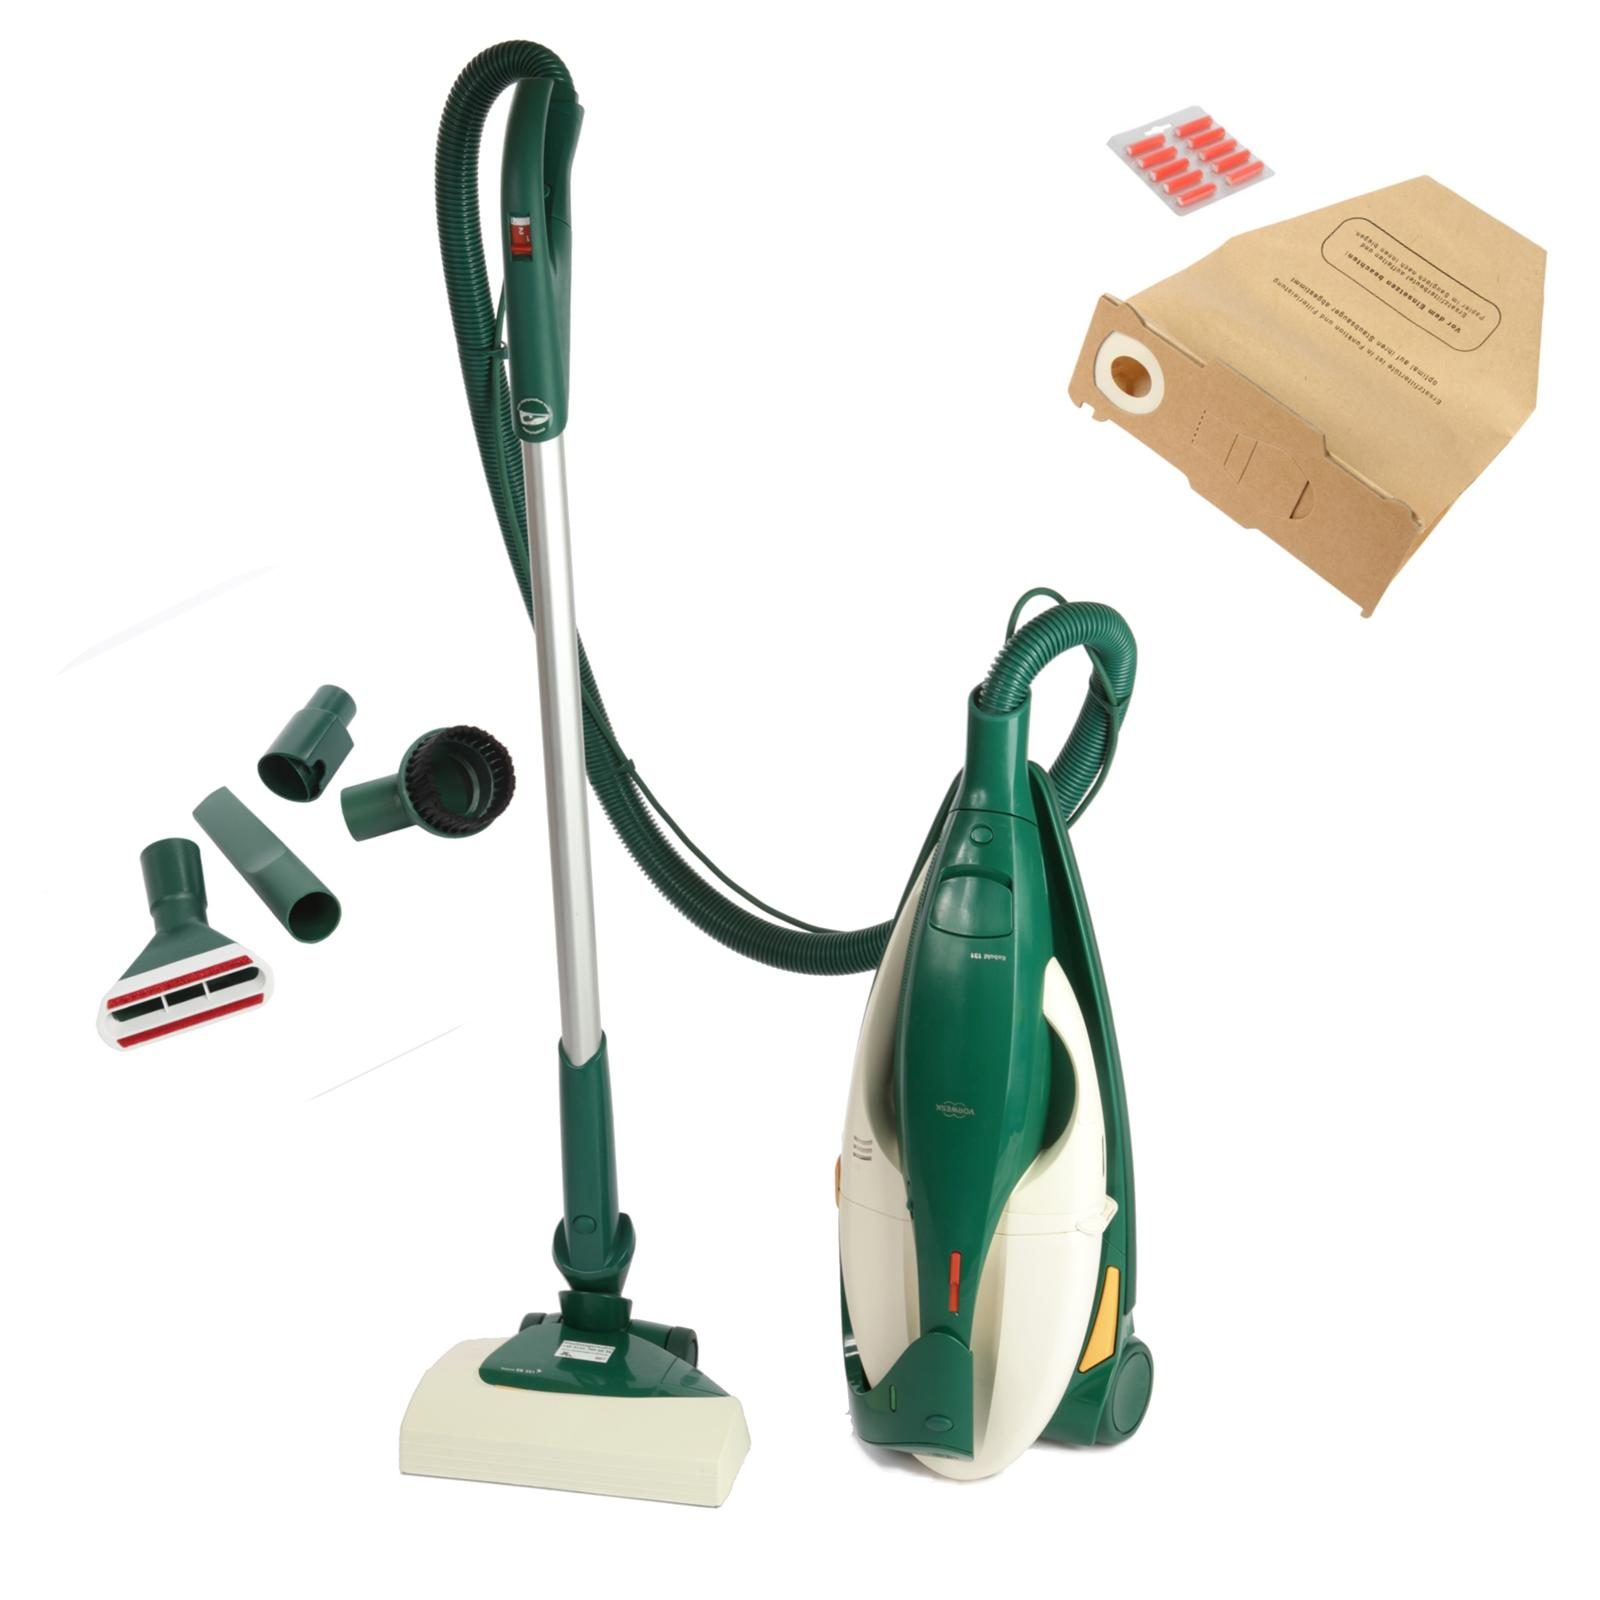 vorwerk kobold 131 and electric brush 350 warranty ebay. Black Bedroom Furniture Sets. Home Design Ideas